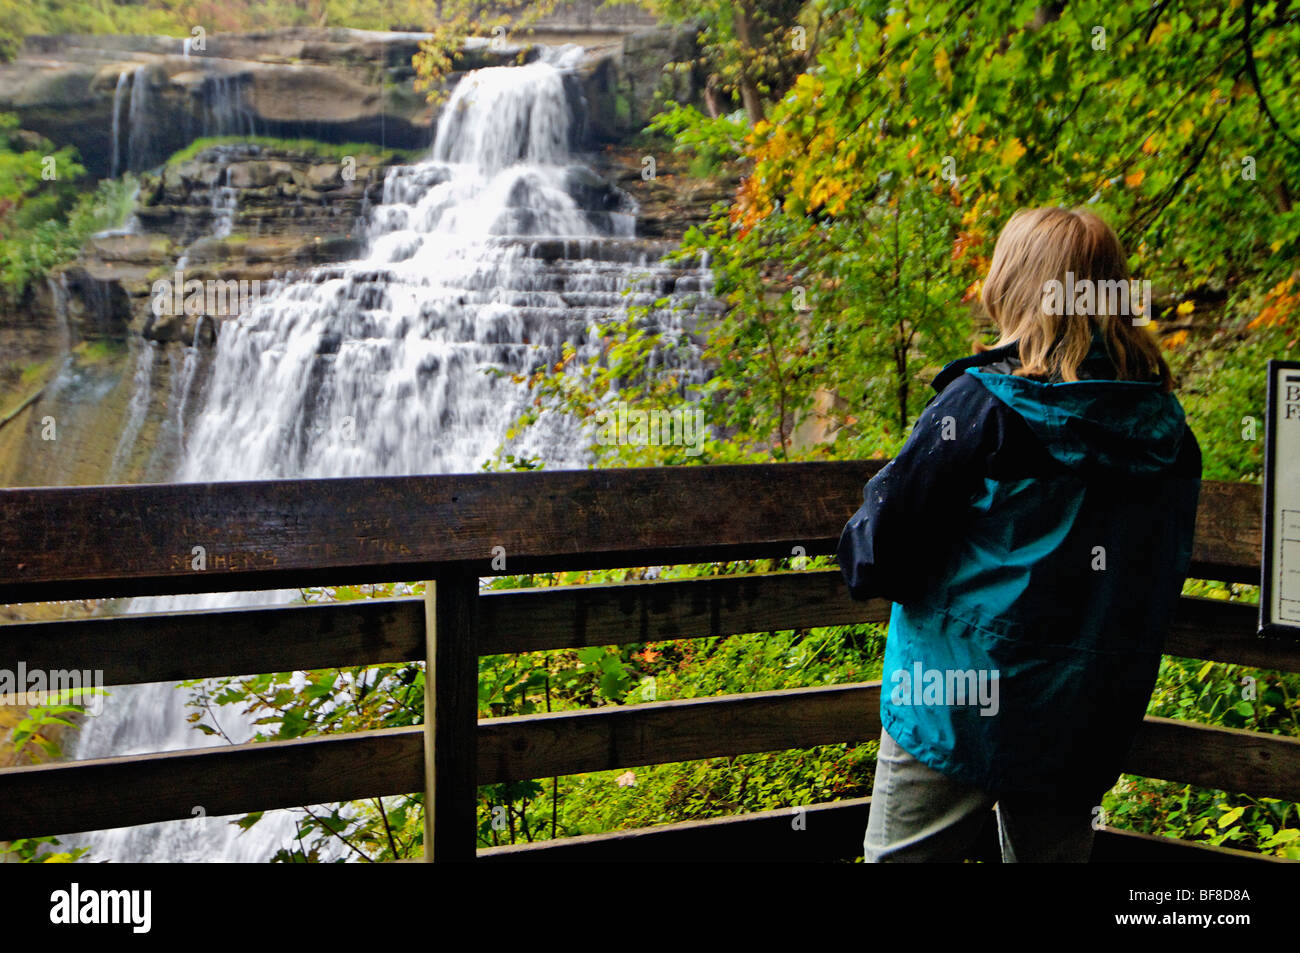 Woman Viewing Brandywine Falls in Cuyahoga Valley National Park in Ohio - Stock Image